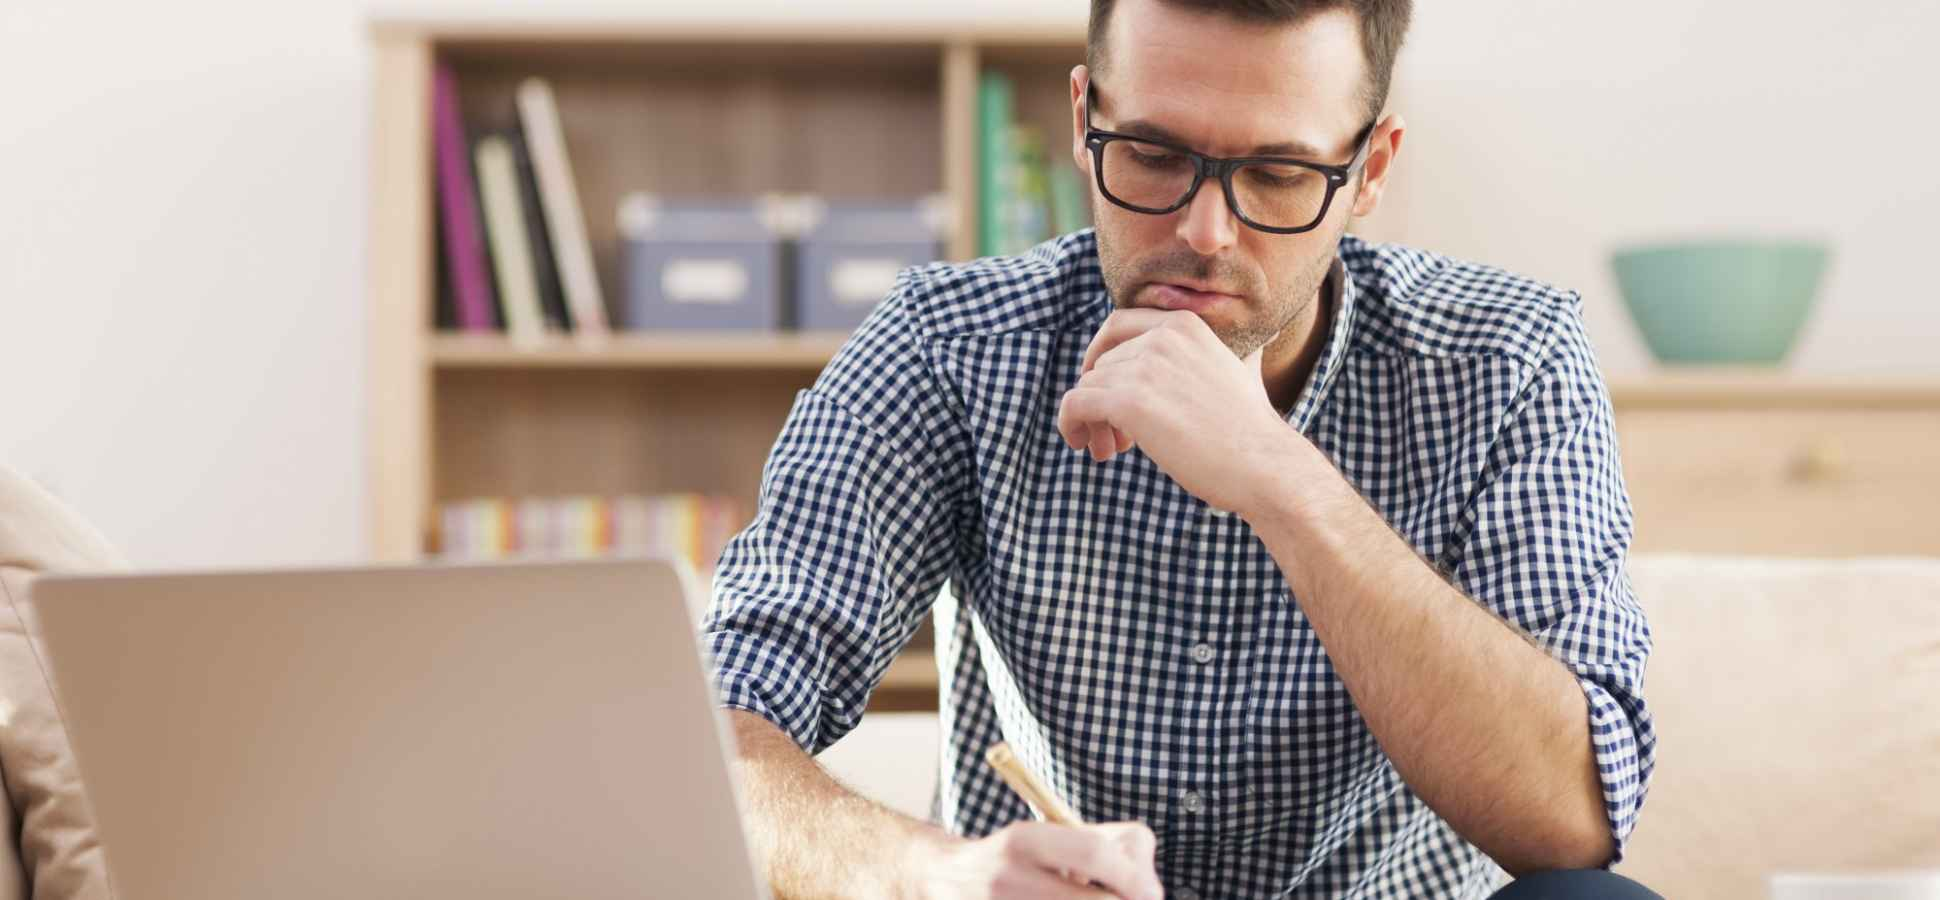 5 Actionable Steps To Immediately Become A Better Writer